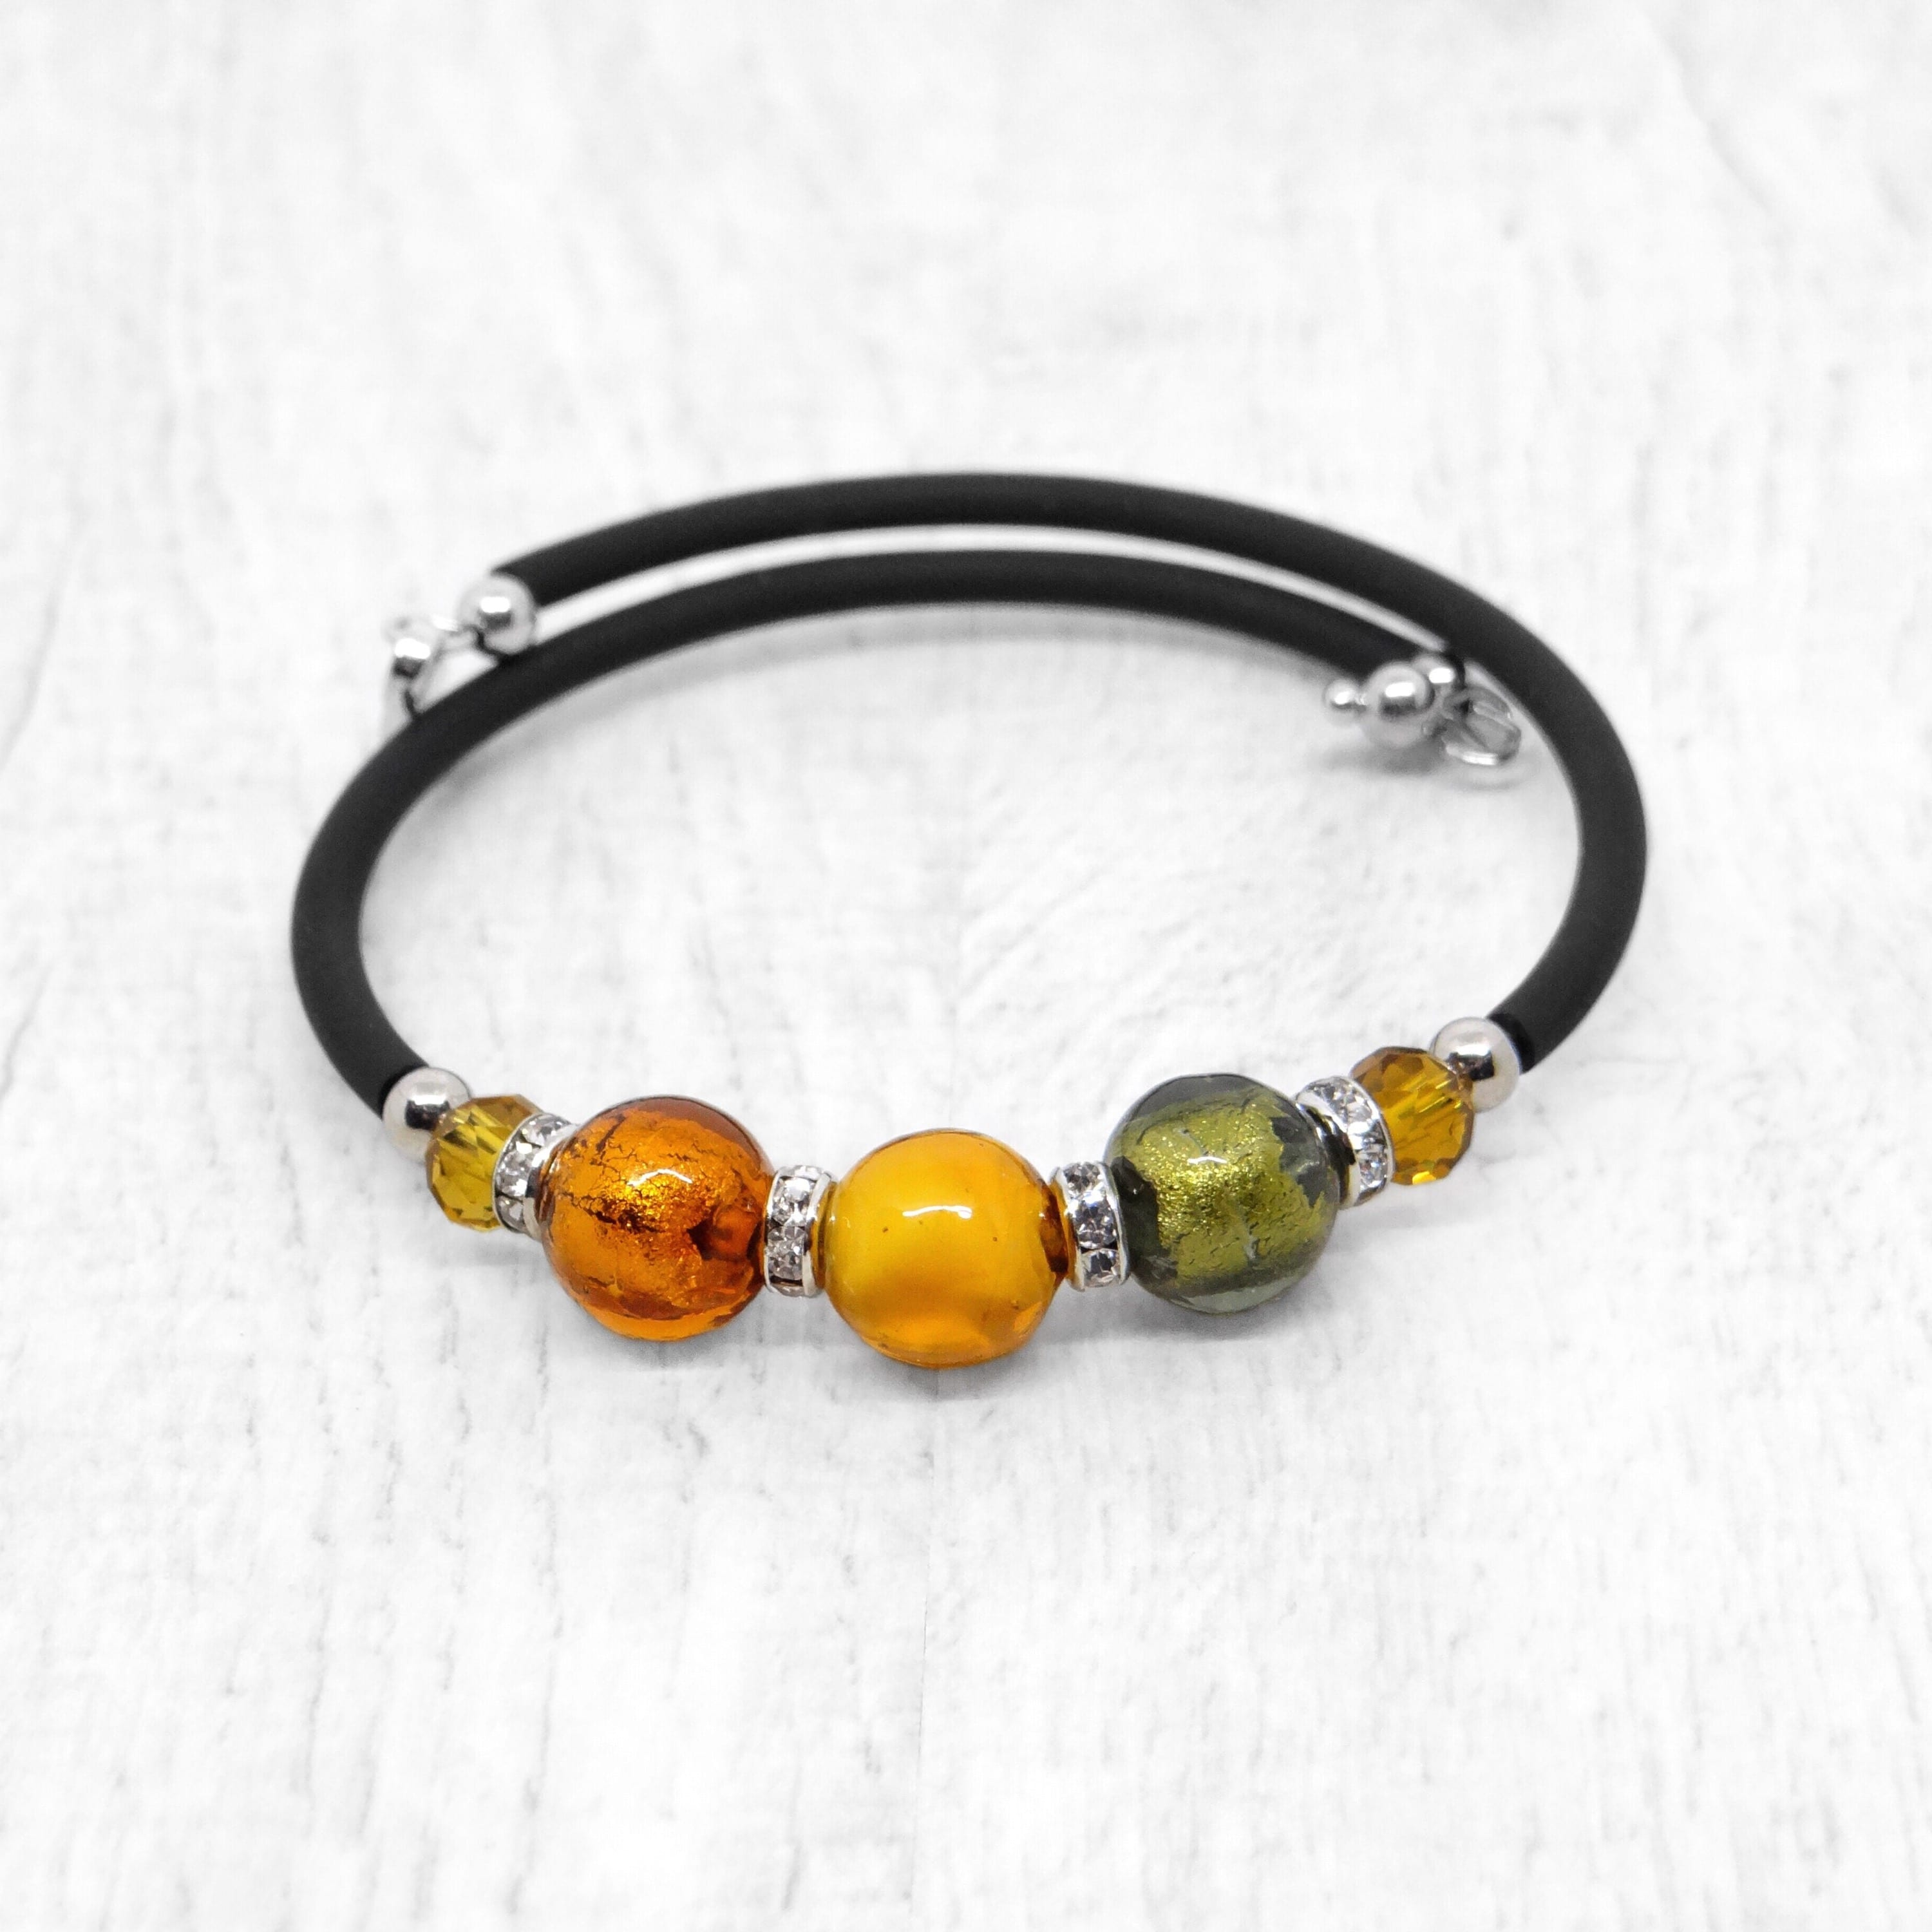 Bracelet with Topaz Murano glass beads, handcrafted in Venice - From the Bàgolo Collection, by Miani Venetian Jewelry